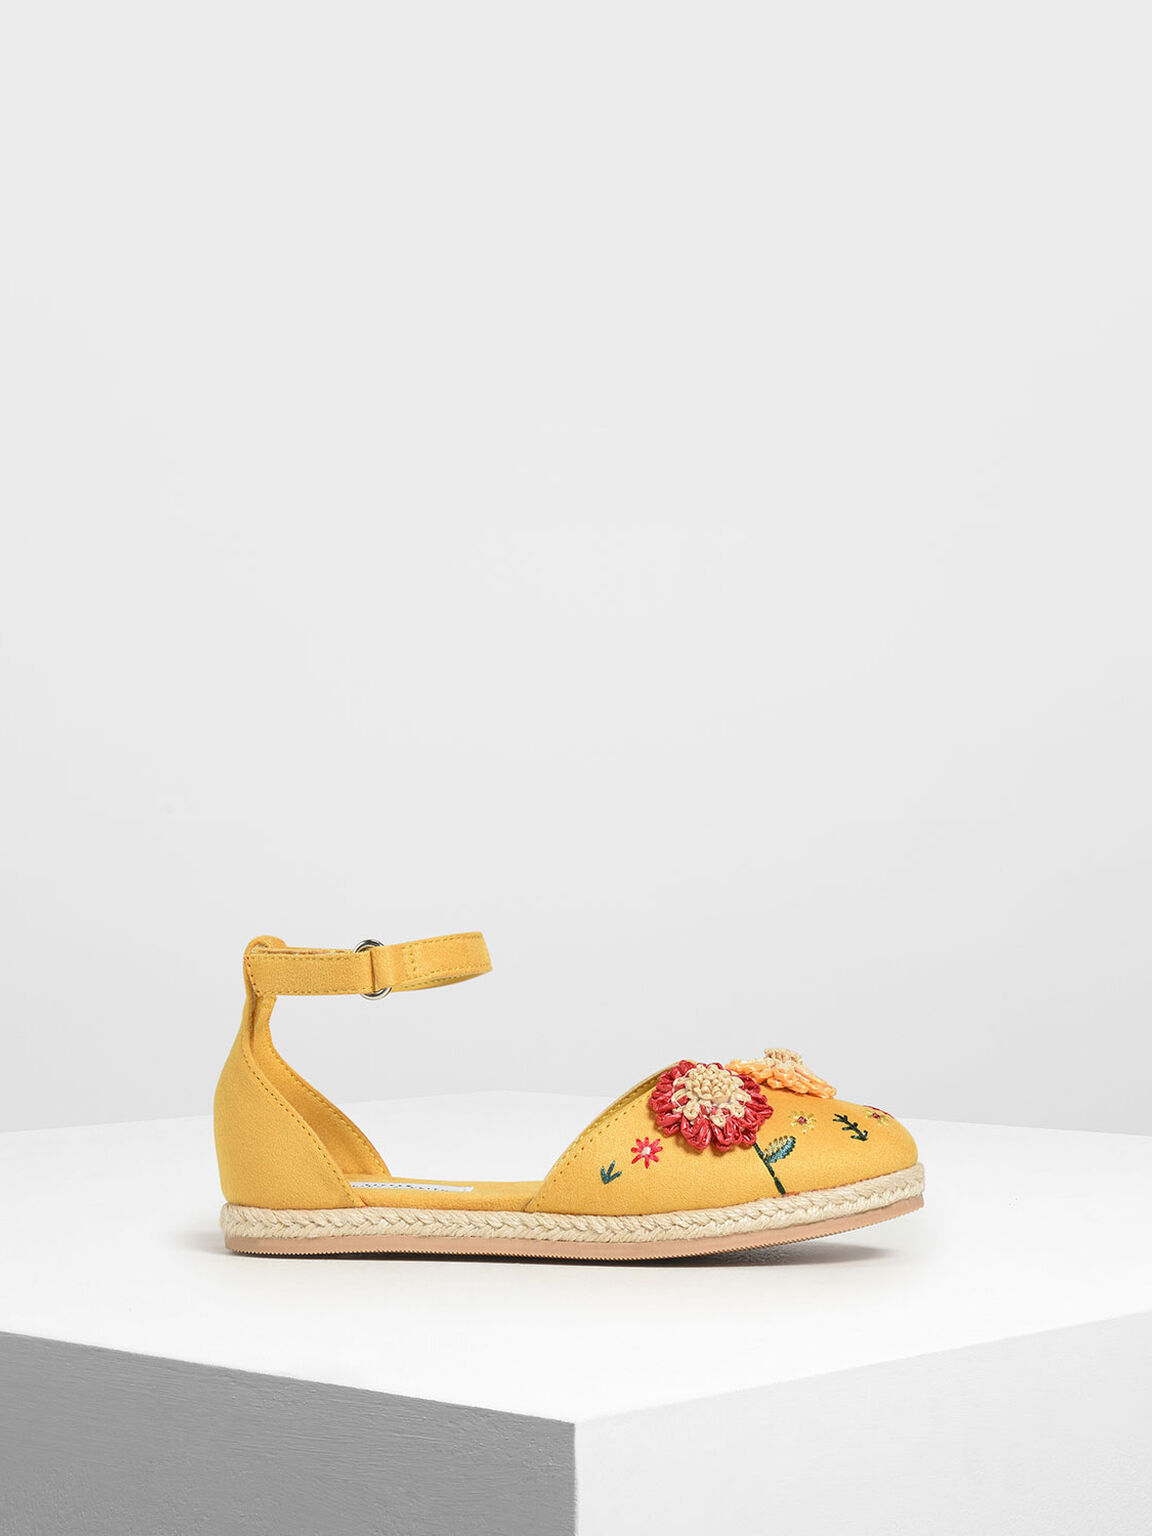 Girls' Floral Embroidered Raffia Sandals, Yellow, hi-res